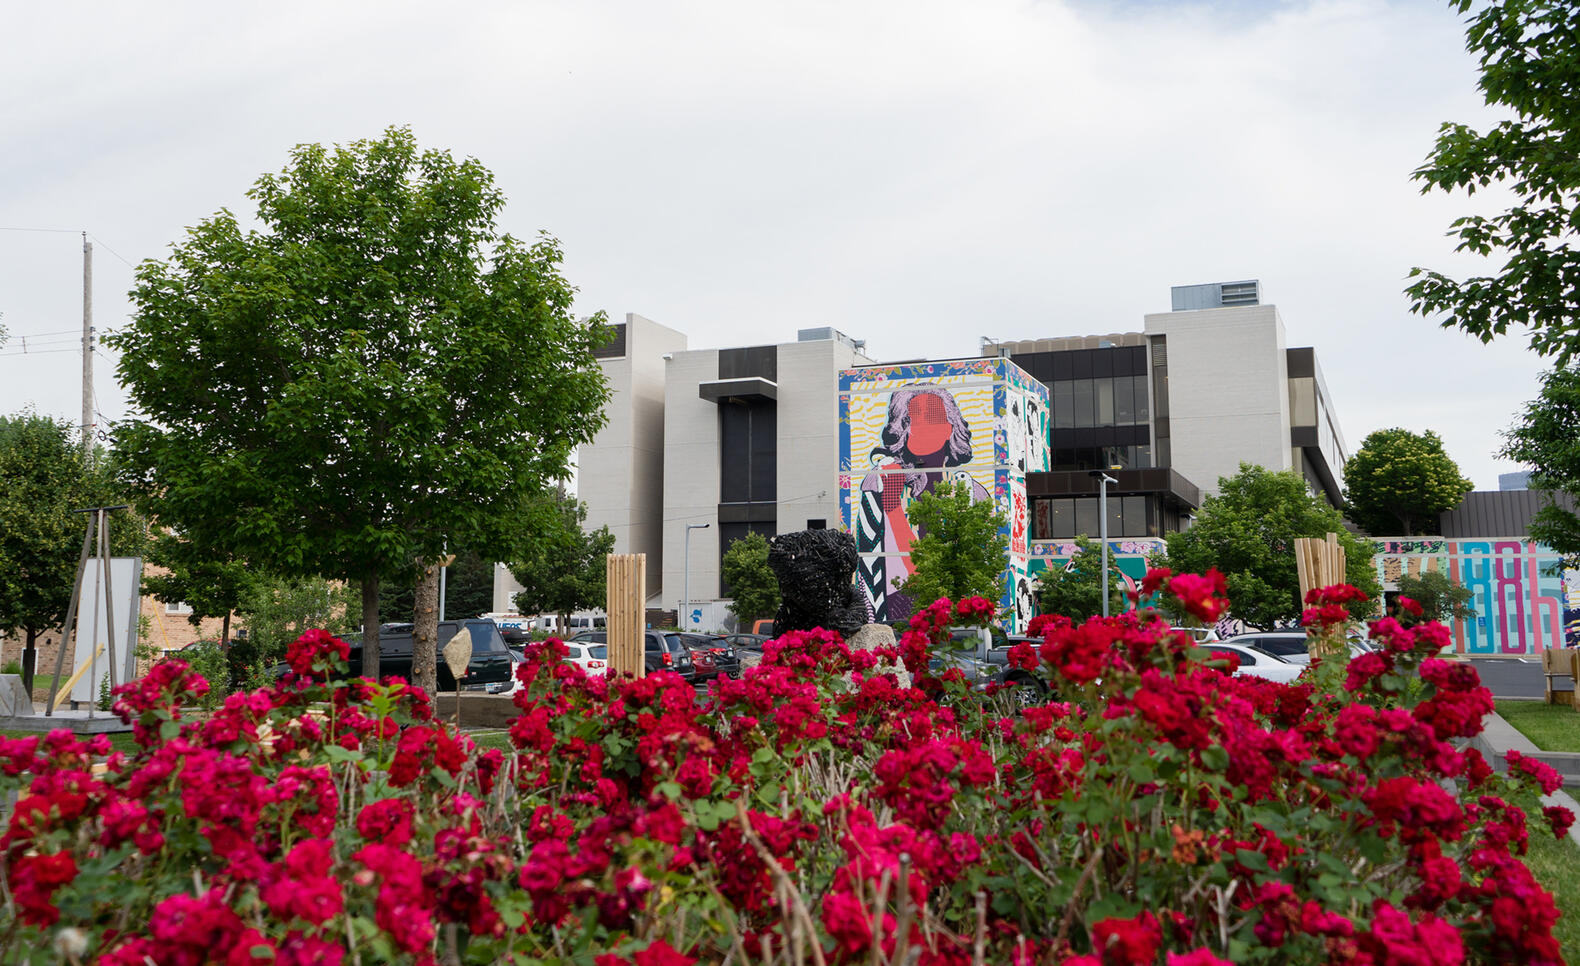 MCAD's FAILE mural, viewed behind a group of flowers.